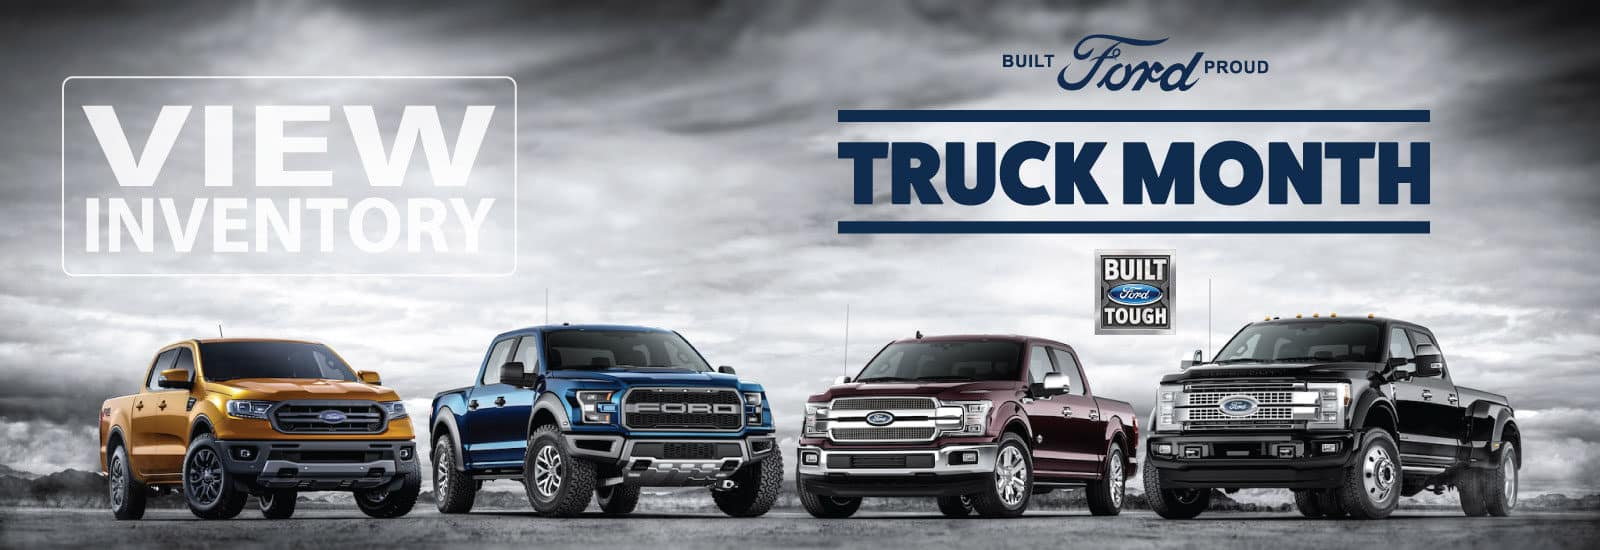 RS-Ford-Truck-Month-Website-Banner-Slider-1600-x-550-JPEG